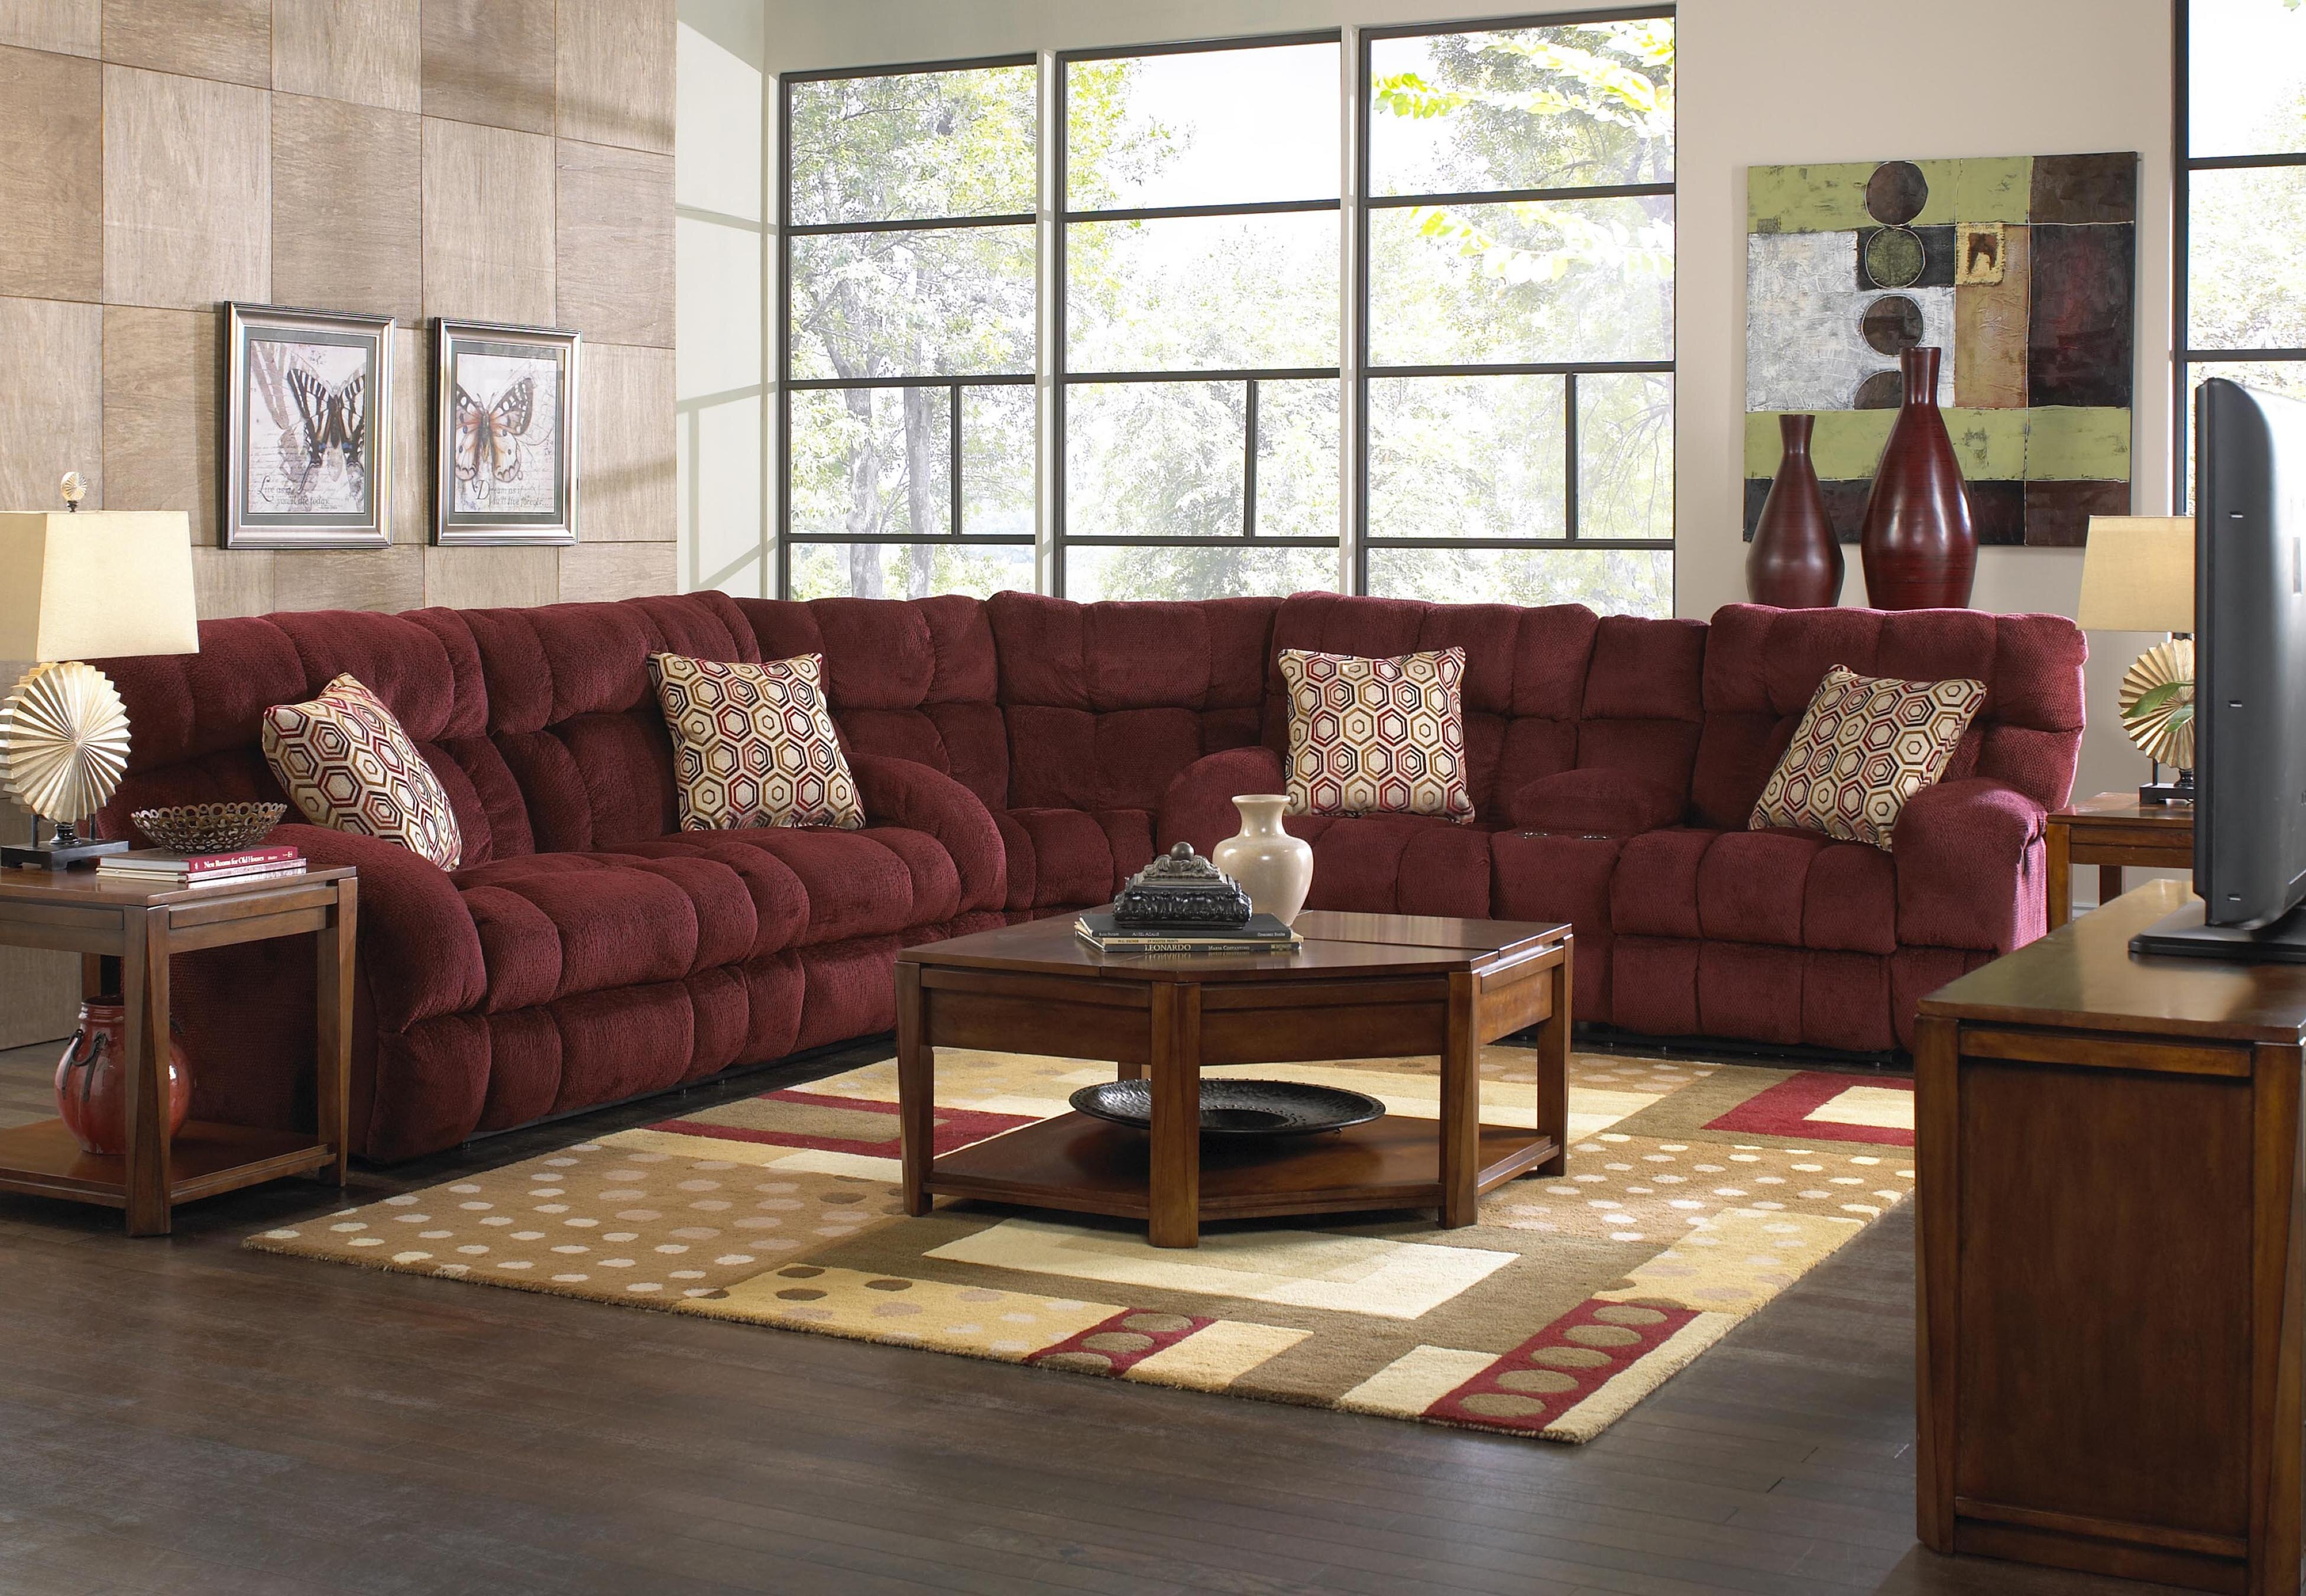 upholstered sofa century and modern mid article sectionals timber pin radley sectional gray corner scandinavian pebble furniture